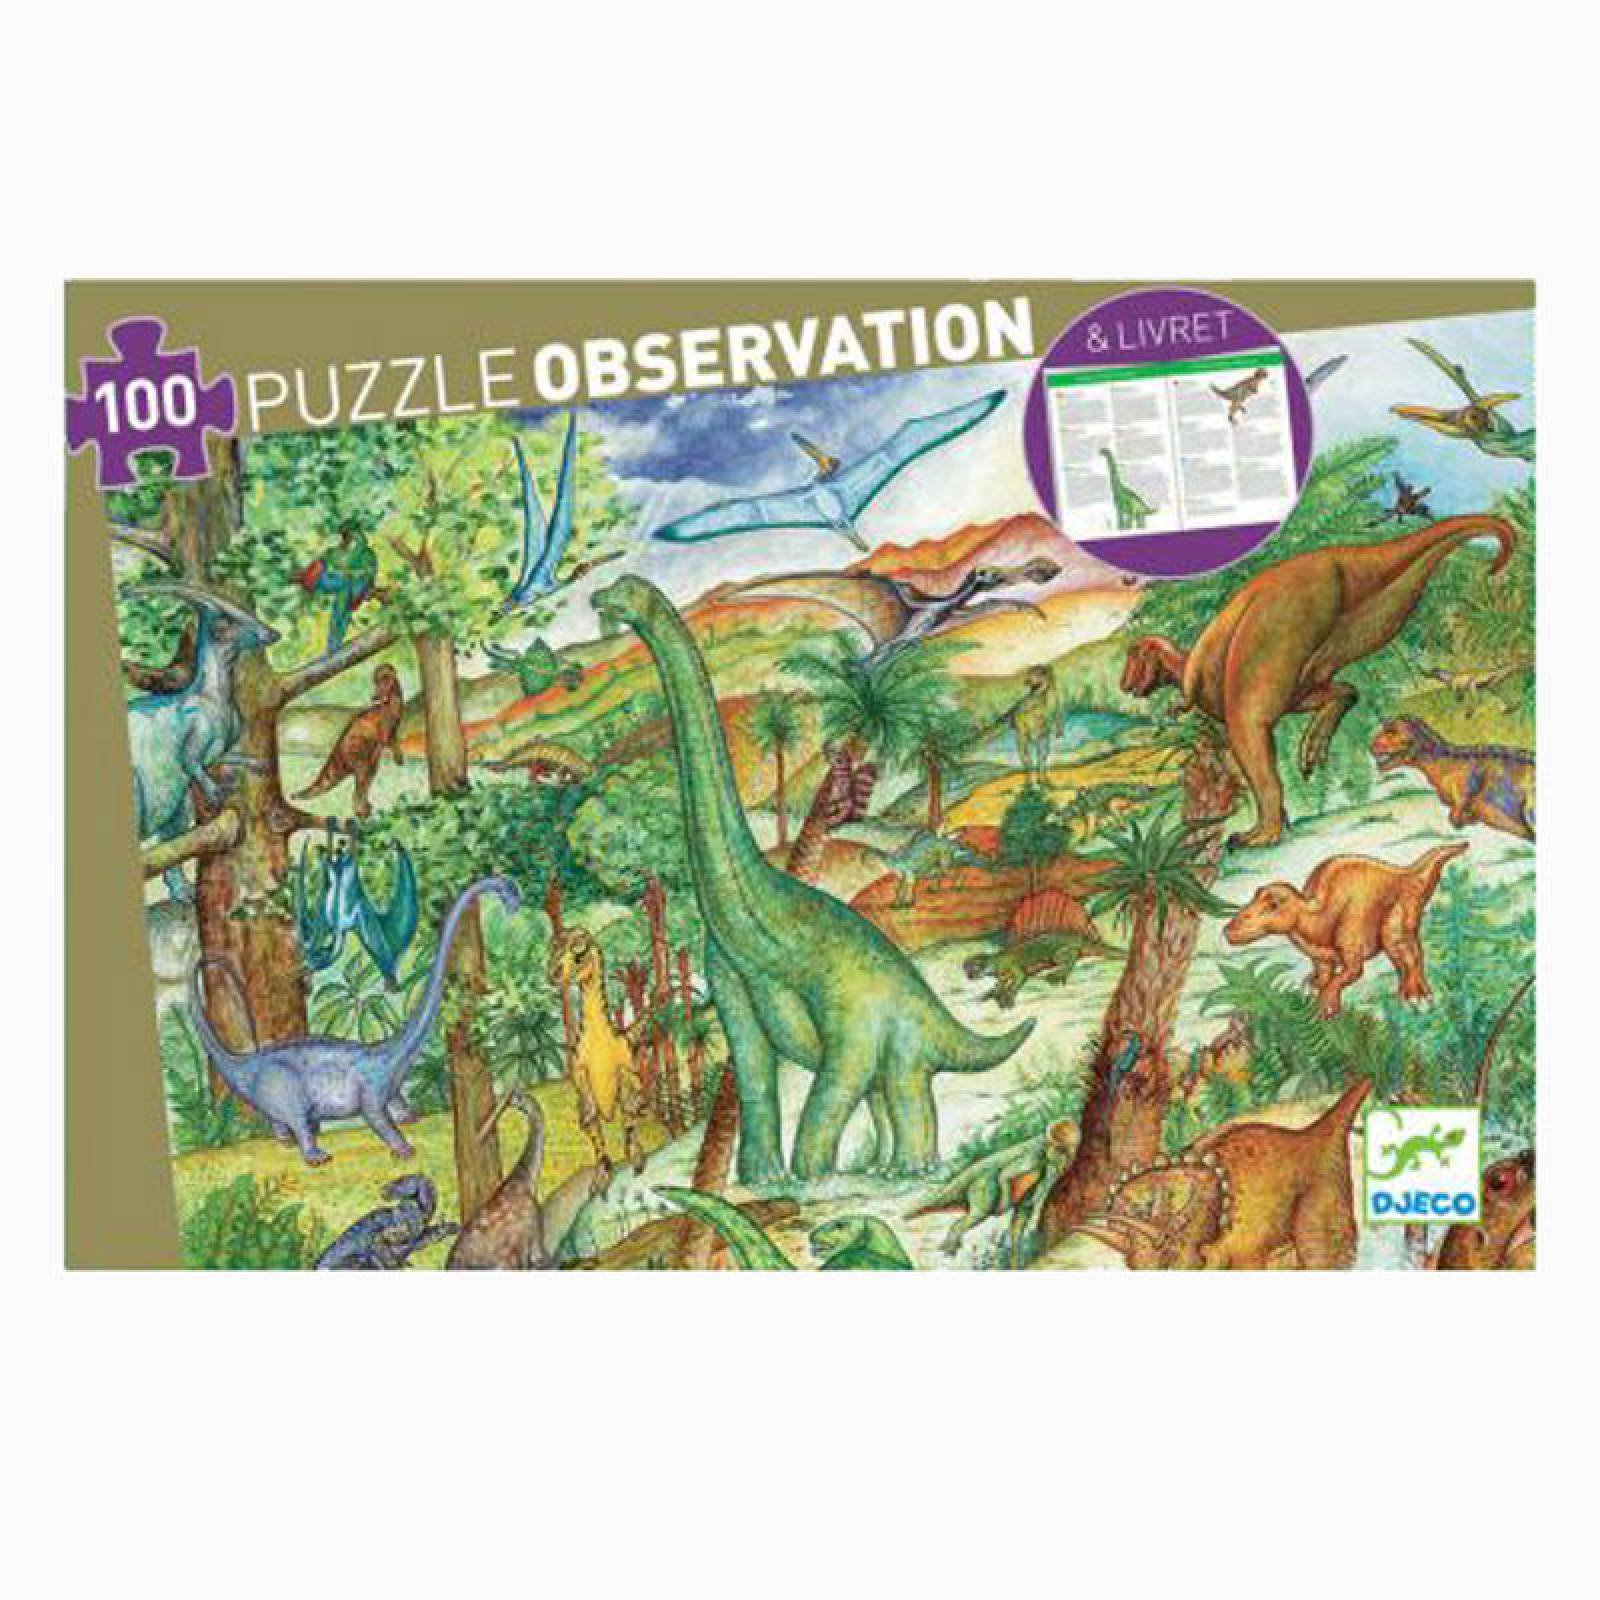 Dinosaurs Observation 100 Piece Puzzle By Djeco